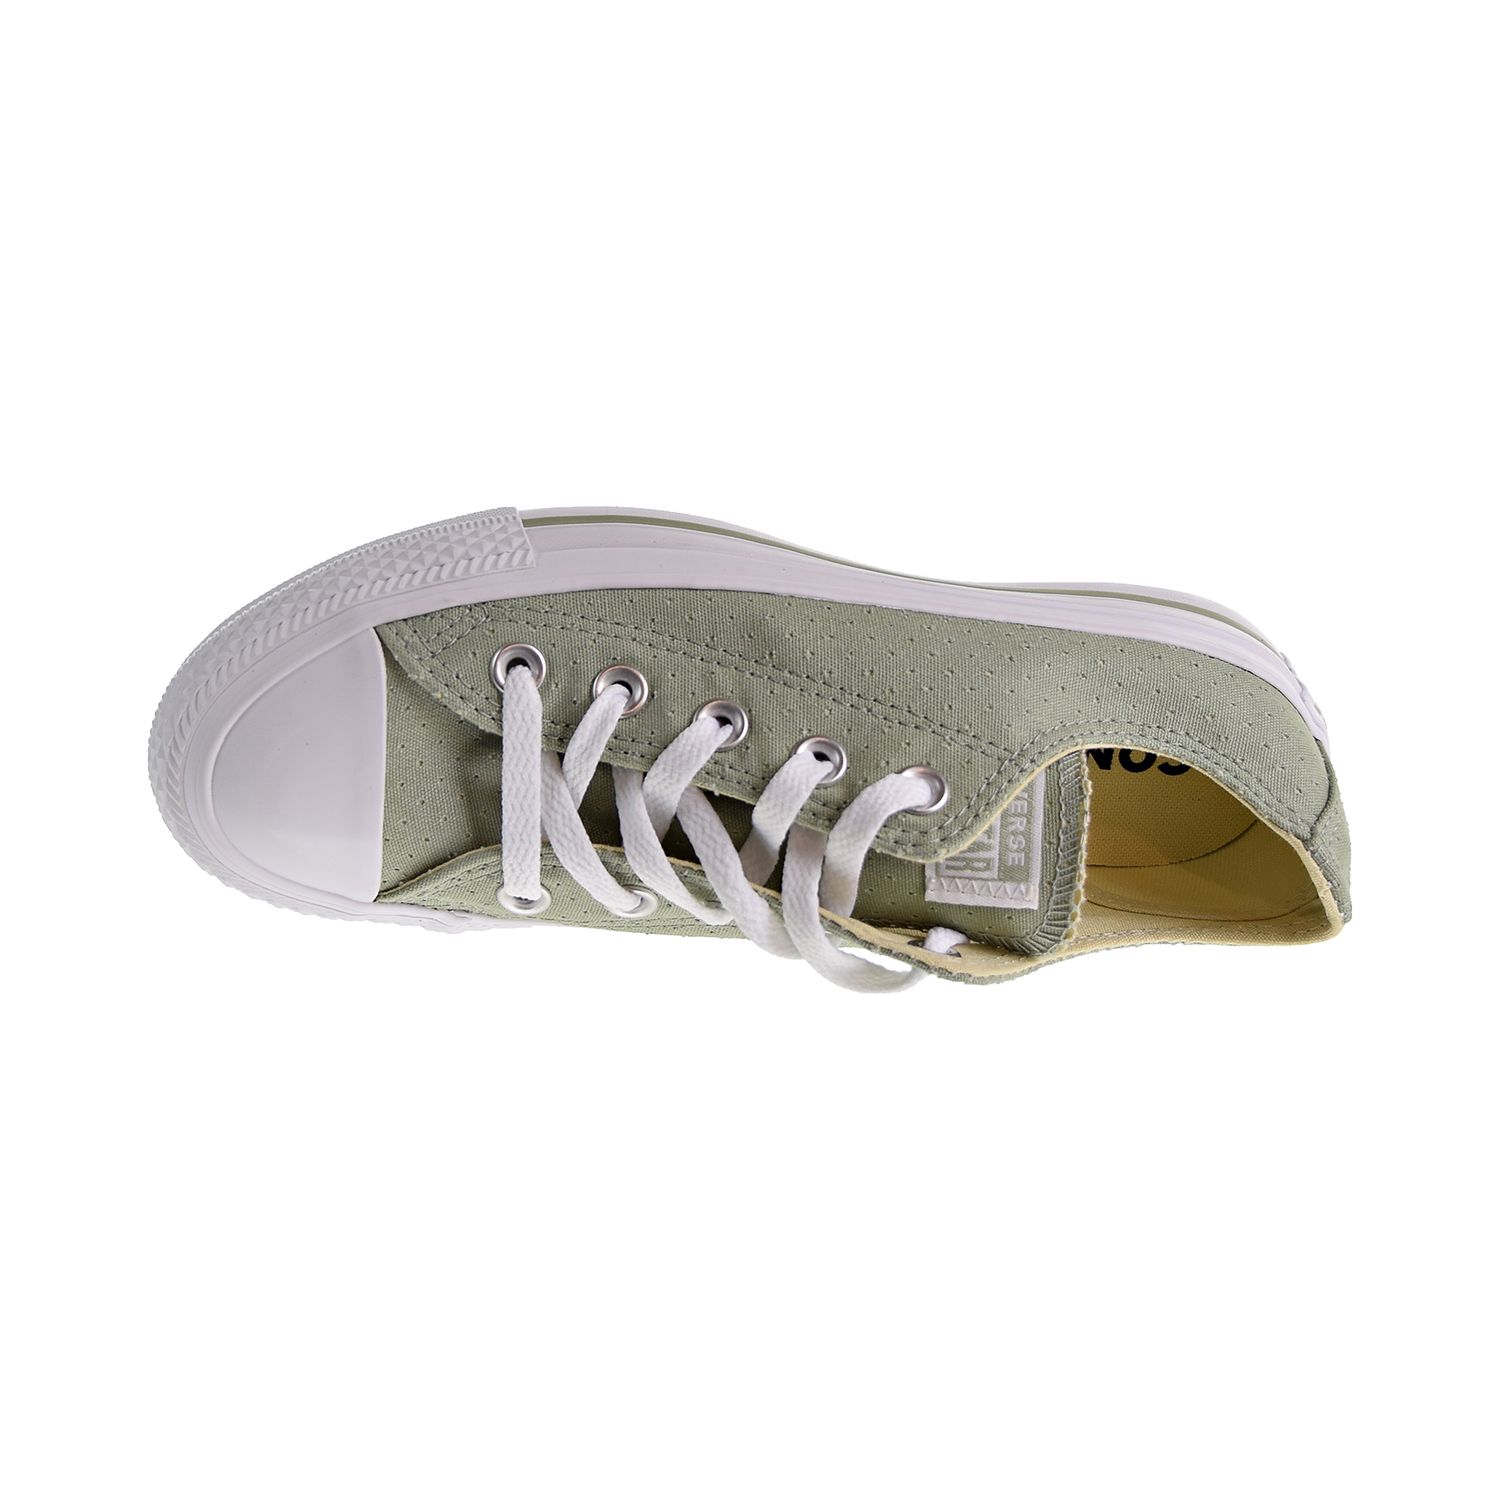 4dcf8e890a71 Converse Chuck Taylor All Star Perforated Ox Women s Shoes Surplus  Sage White 560681c